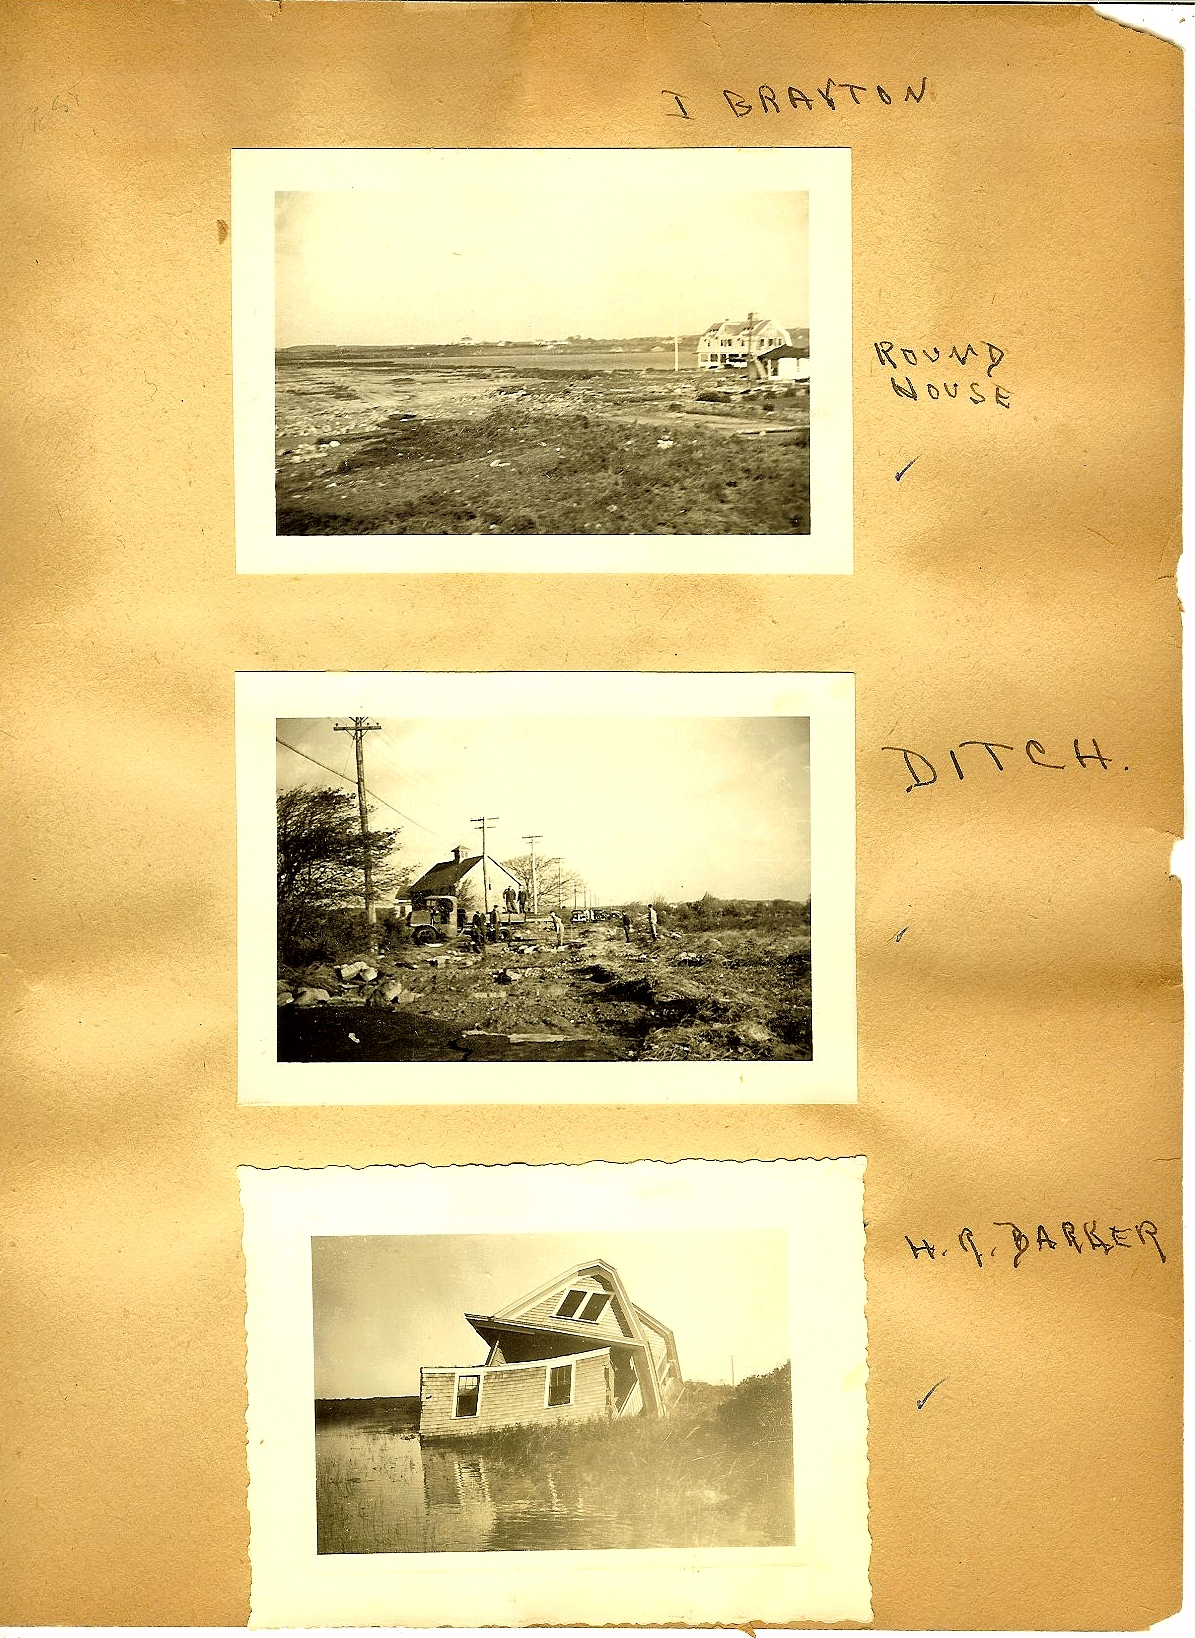 The 1938 Hurricane photos p25